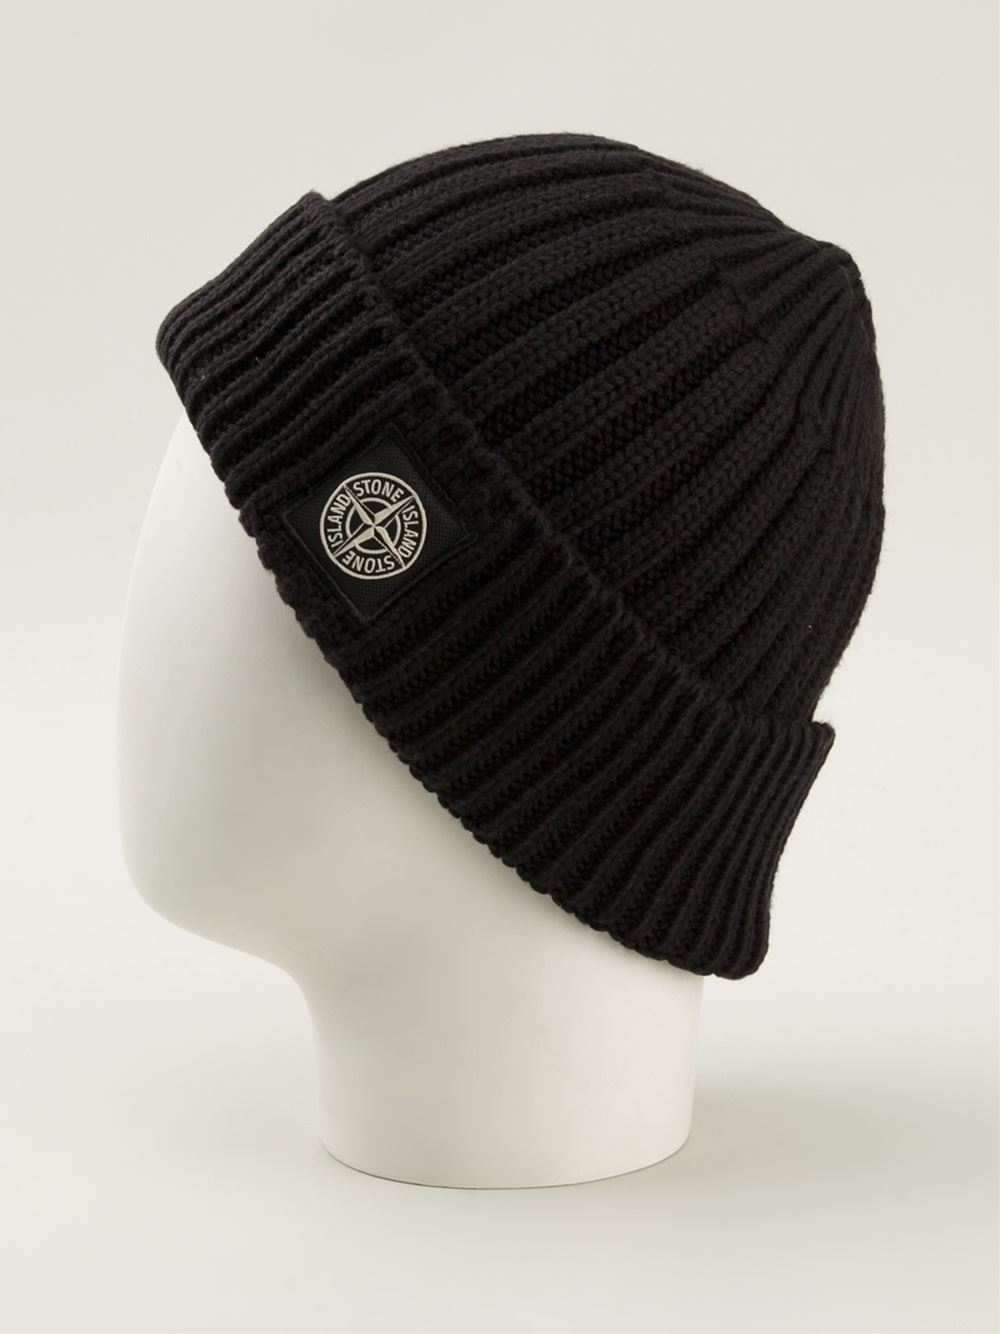 Lyst - Stone Island Ribbed Beanie Hat in Black for Men 9a2feb99795